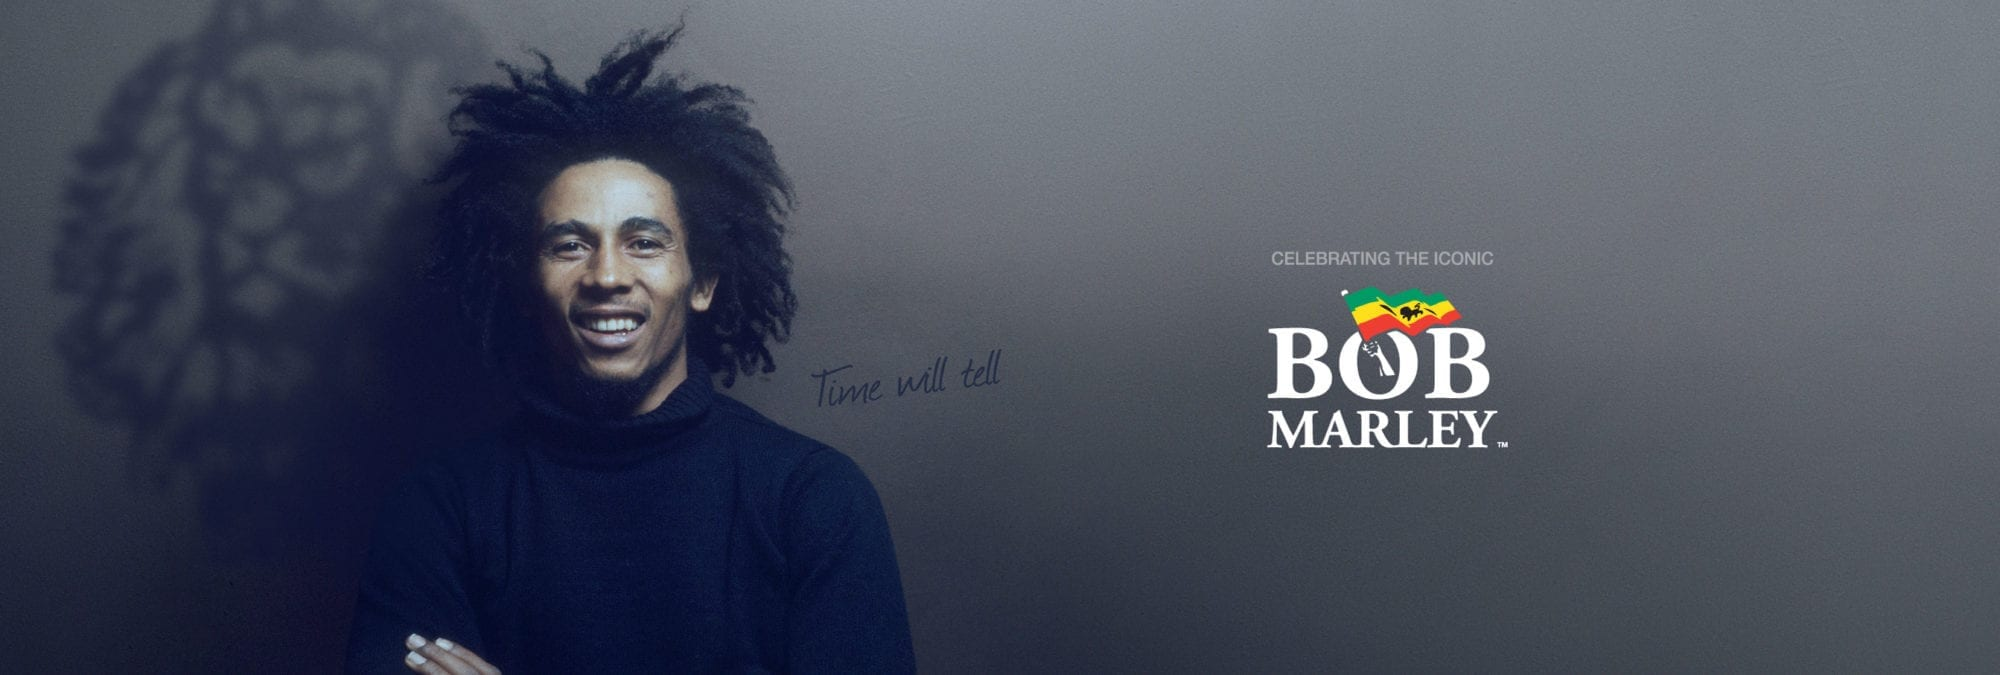 Celebrating the Iconic Bob Marley «Time will Tell»